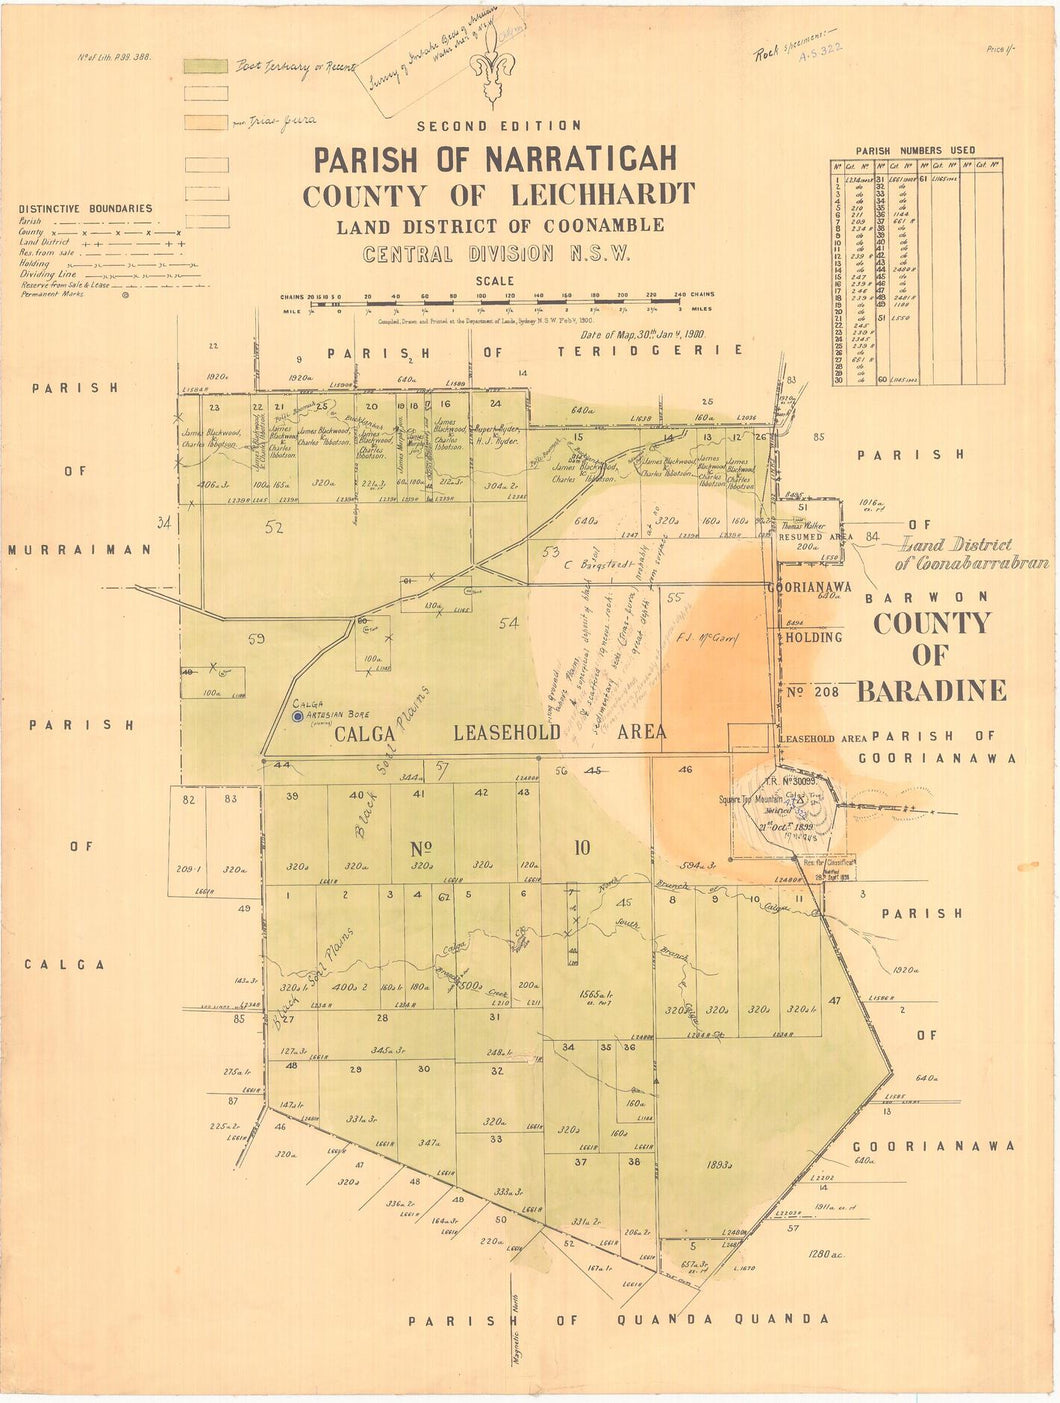 Image of County of Leichhardt, Parish of Narratigah  map